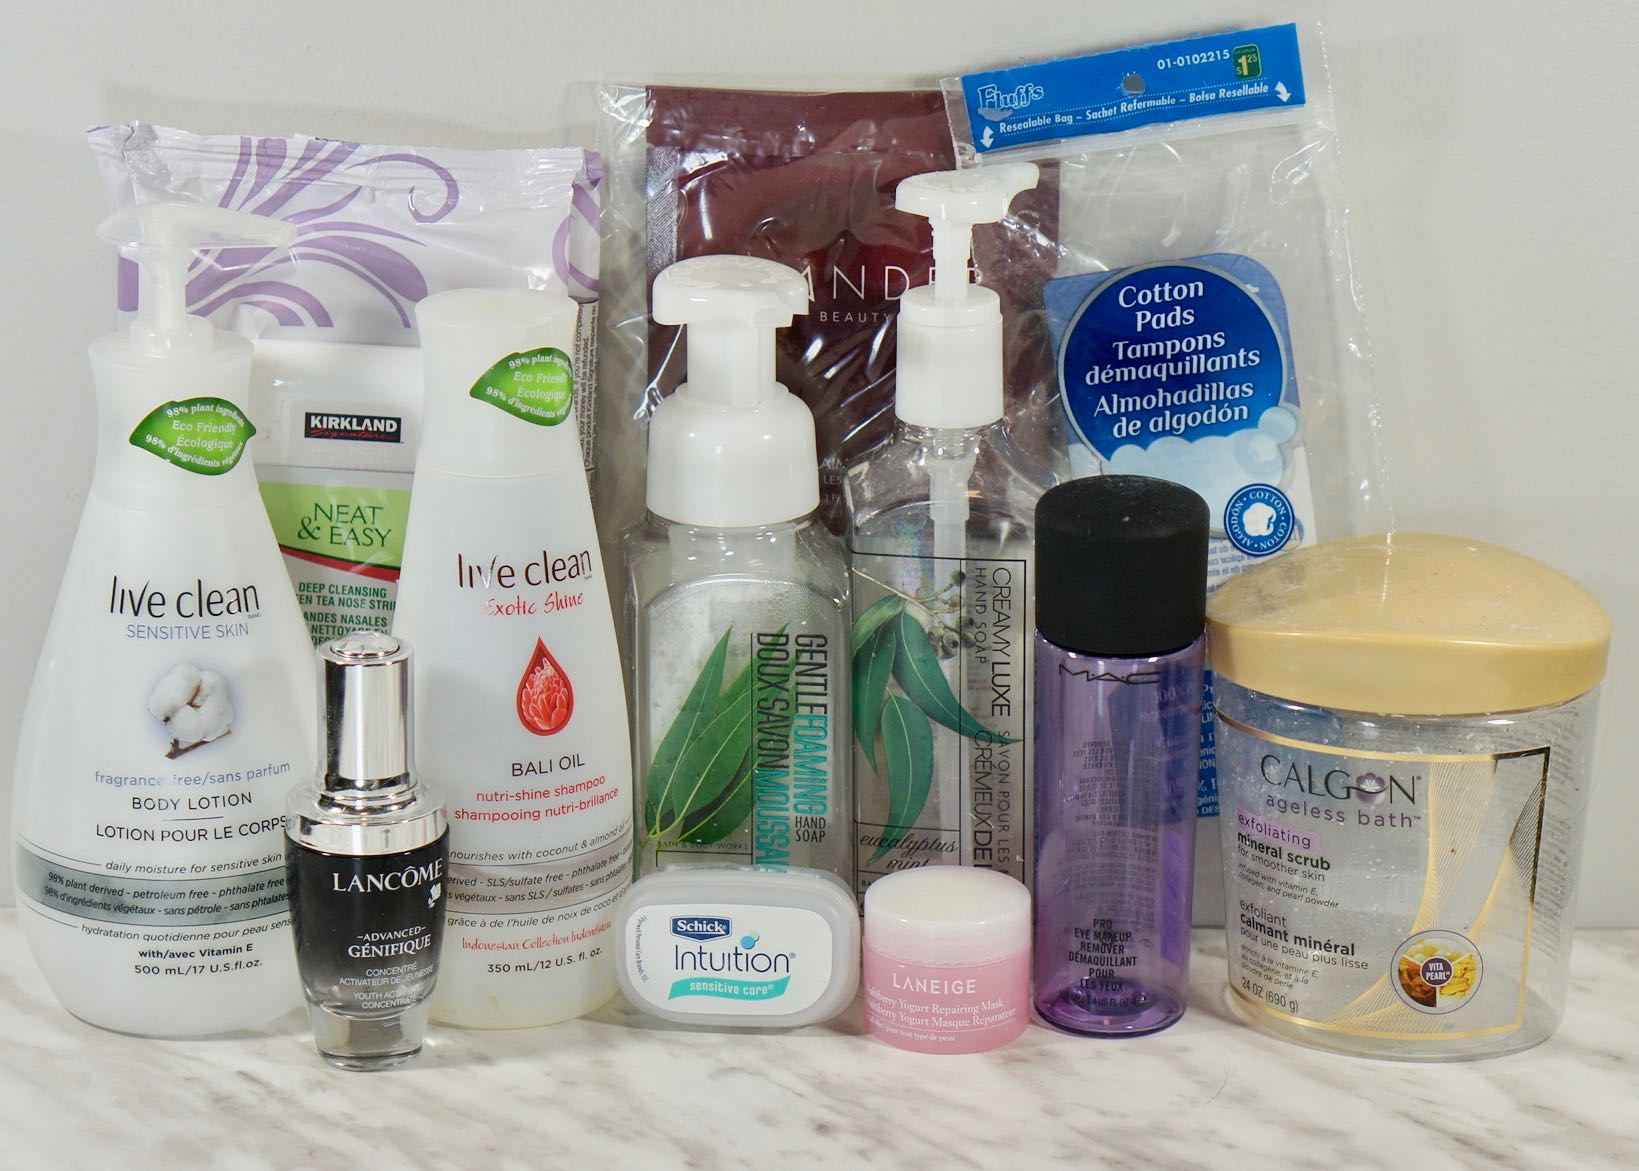 I ended up using up quite a few full size Face & Body products last month.